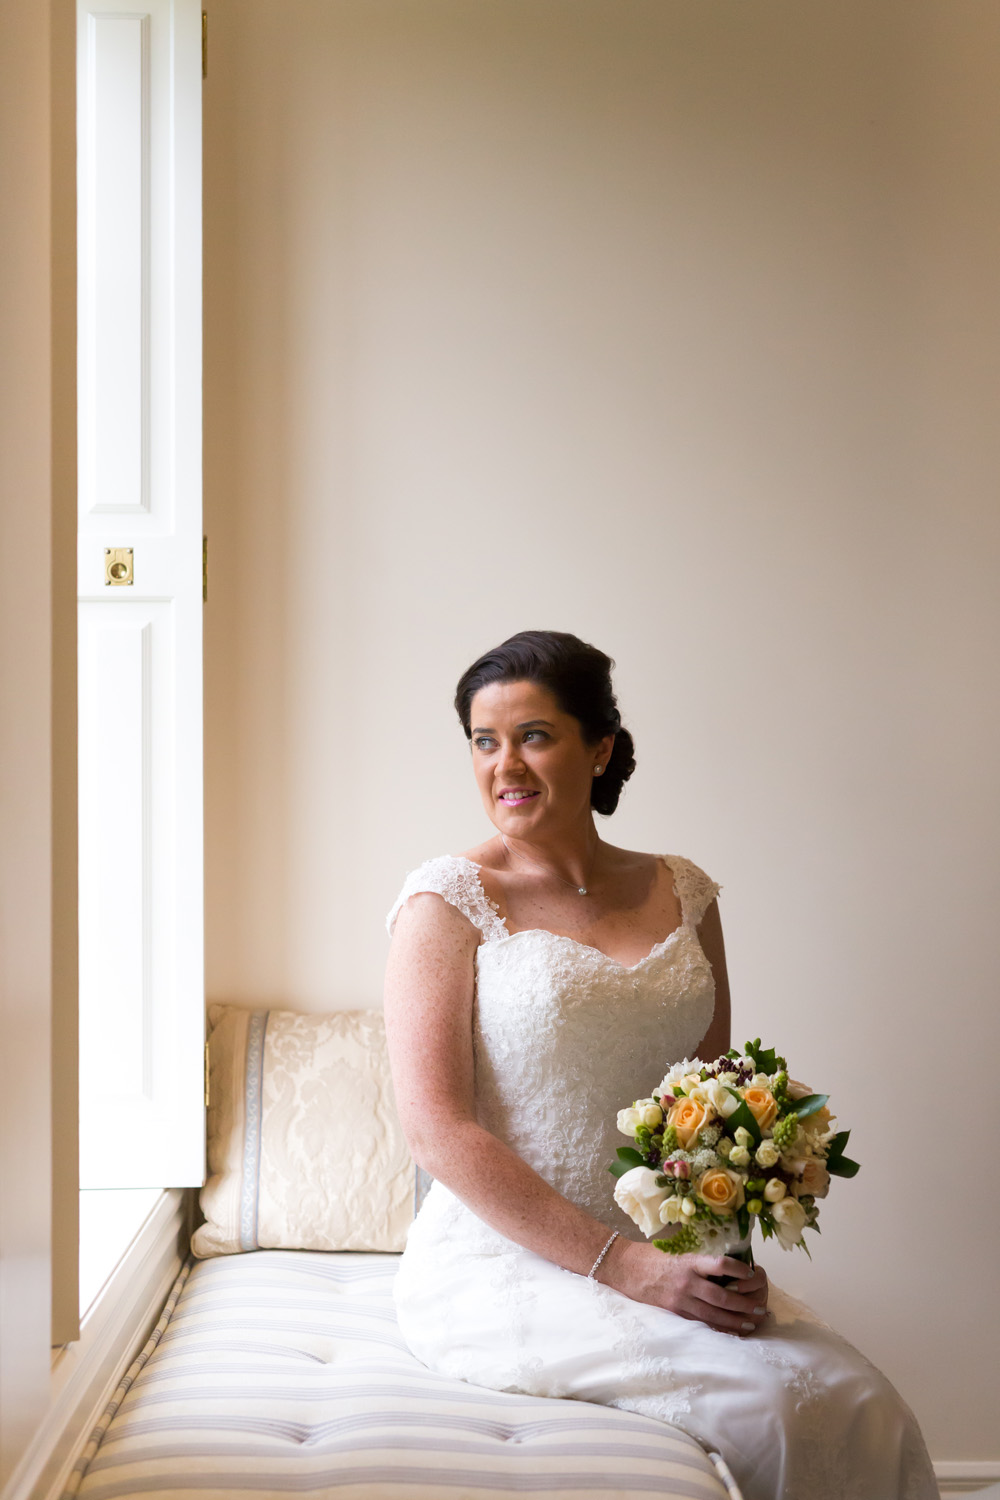 Sarnia Park Wedding | Astra Bride Kirsty | Photography by Clare Gordon |